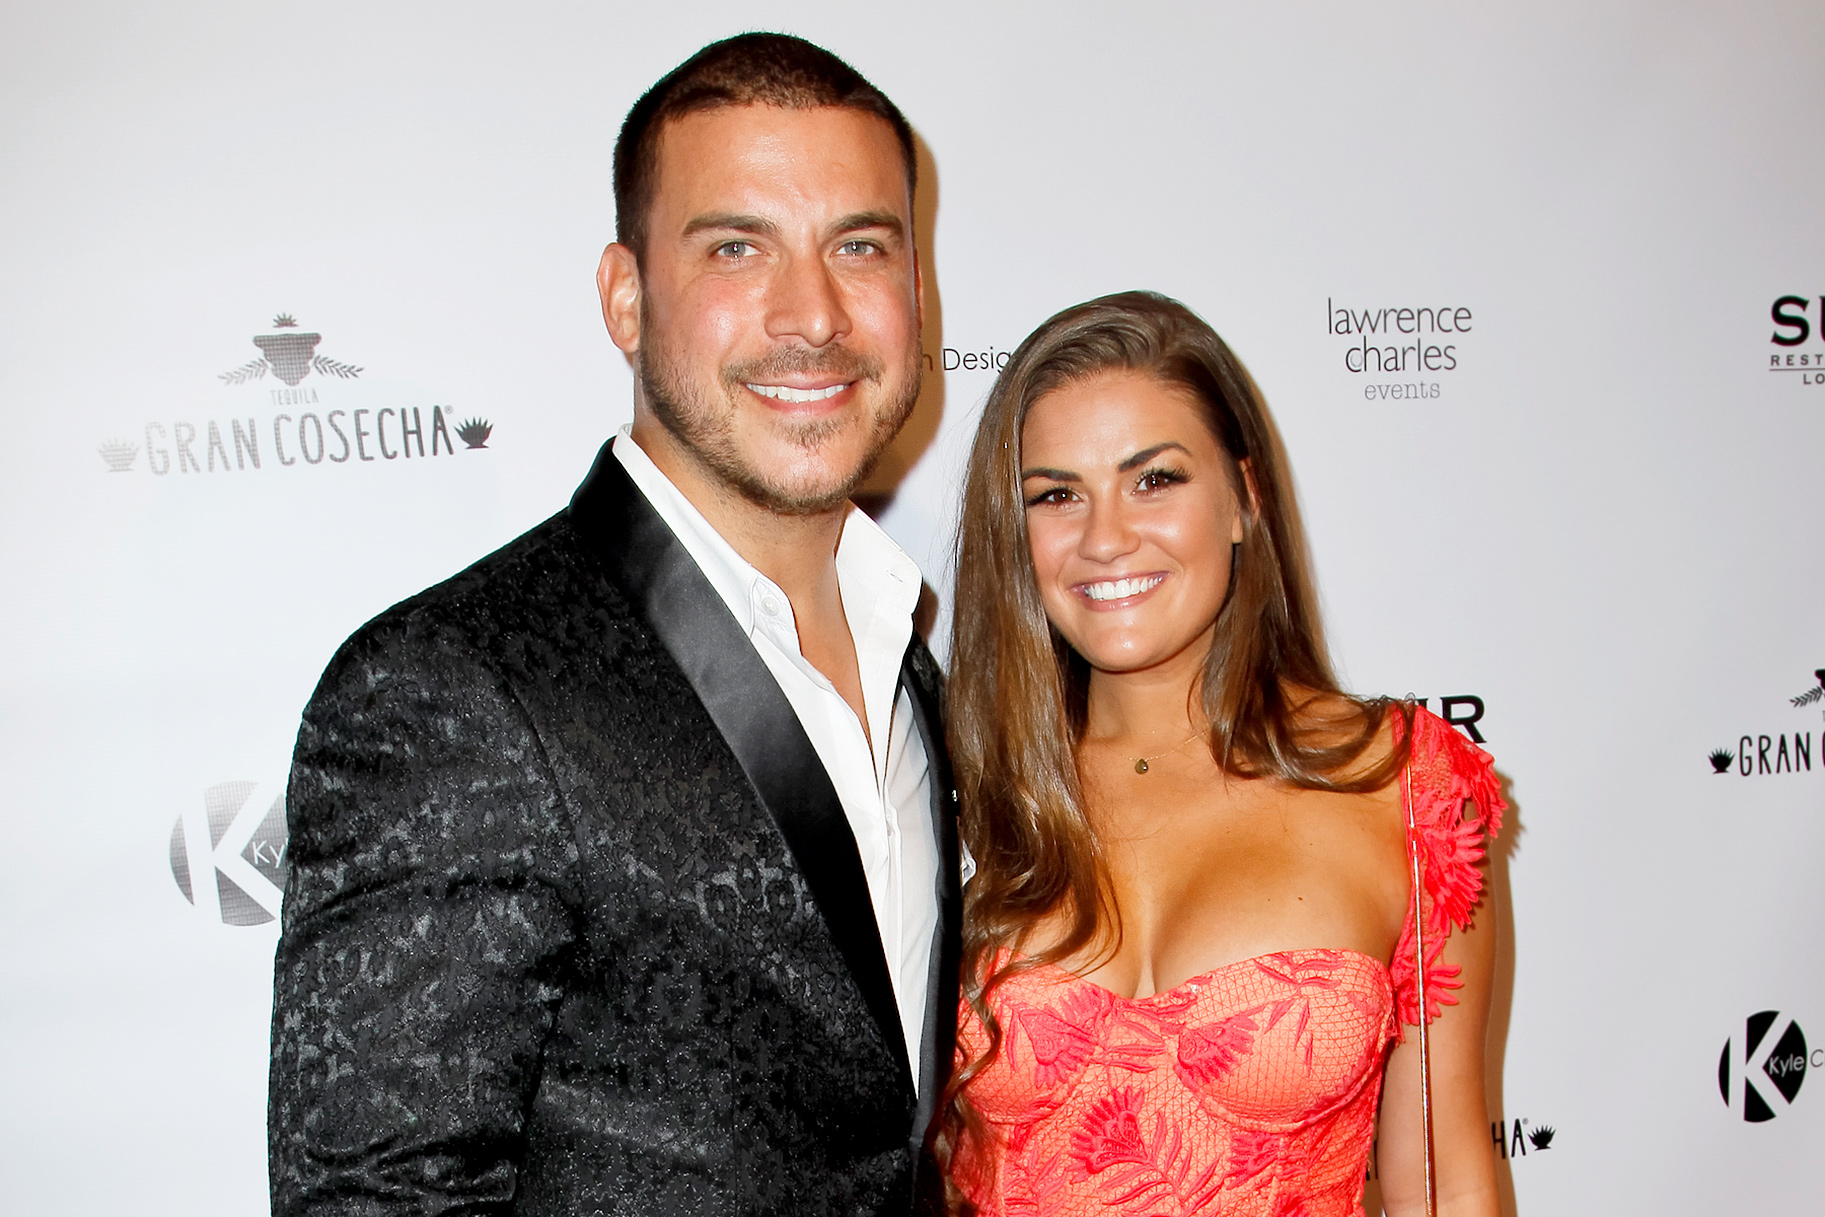 Who is jax hookup from shahs of sunset